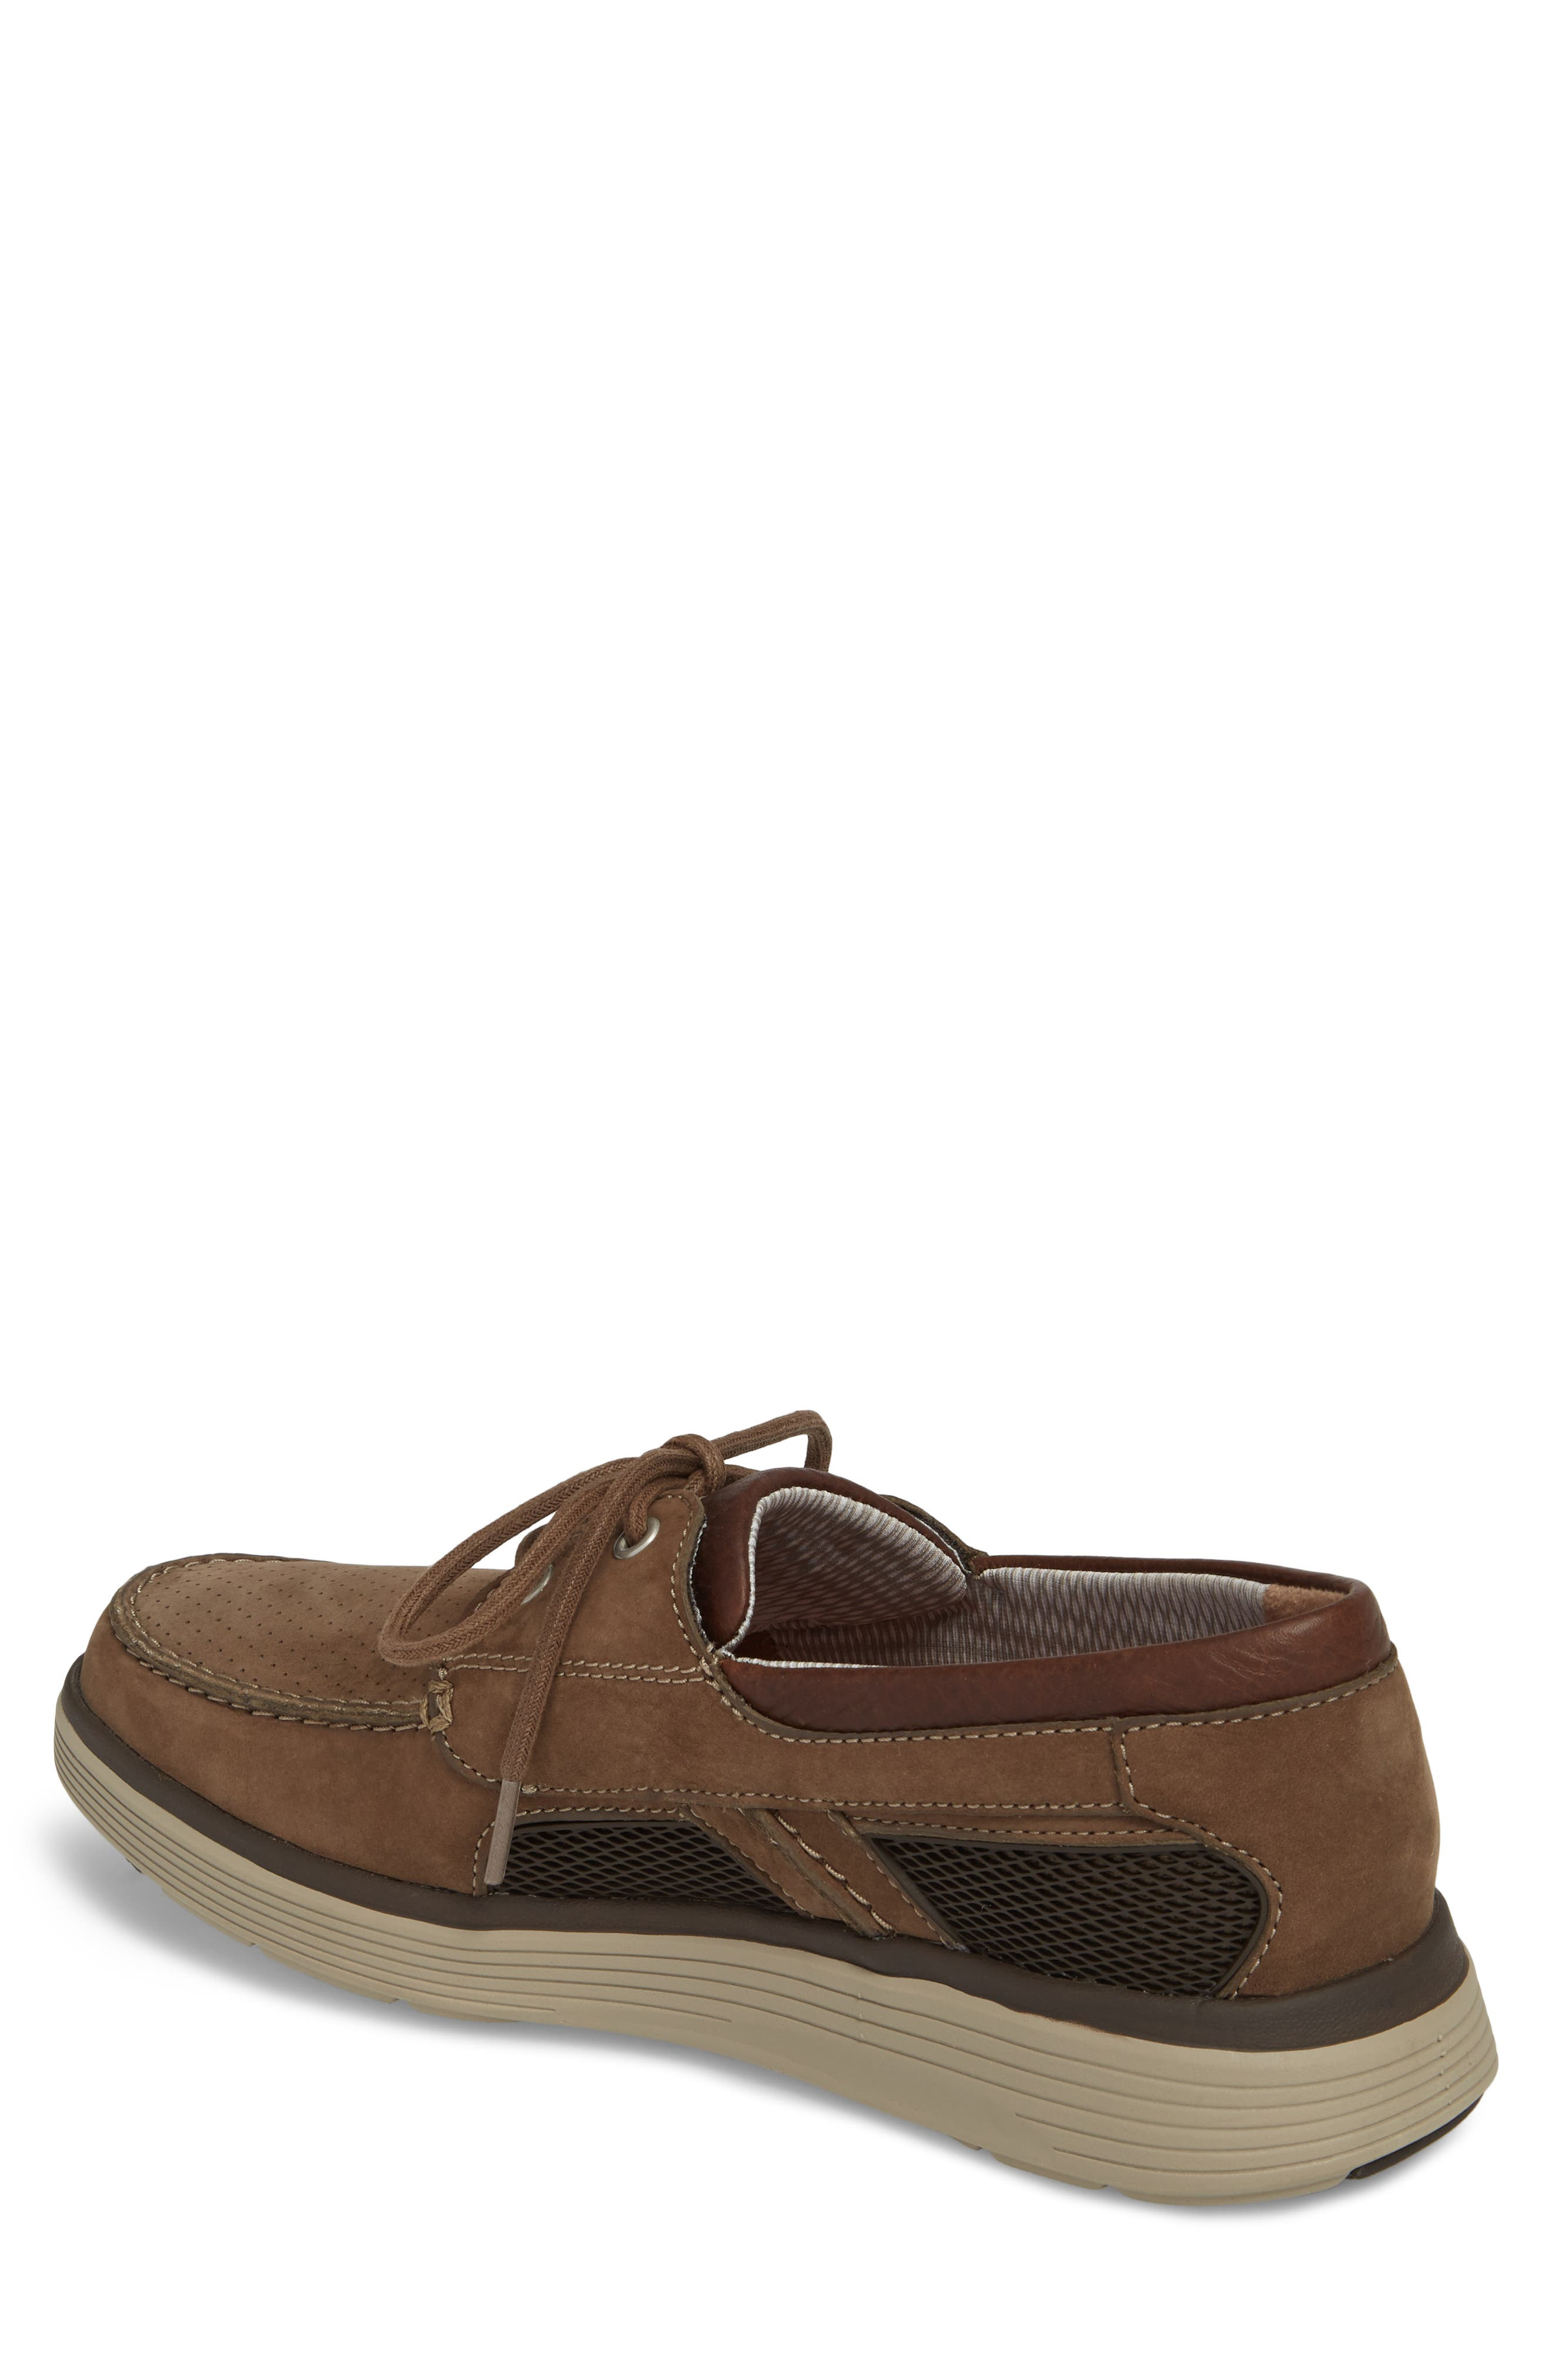 Clarks<sup>®</sup> Unabobe Step Boat Shoe,                             Alternate thumbnail 2, color,                             Olive Nubuck